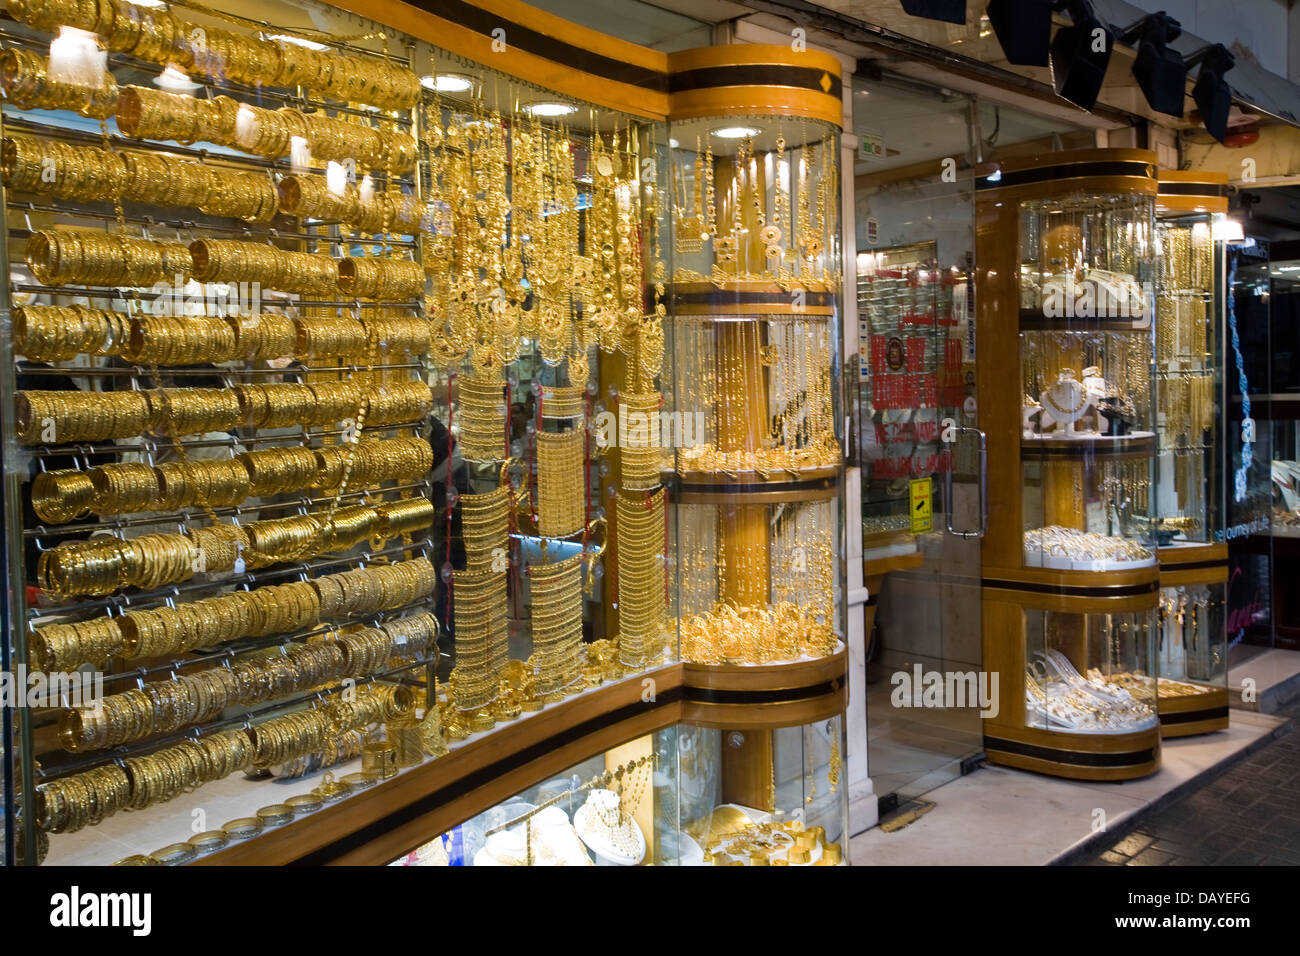 Gold Buyers Stock Photos & Gold Buyers Stock Images - Alamy